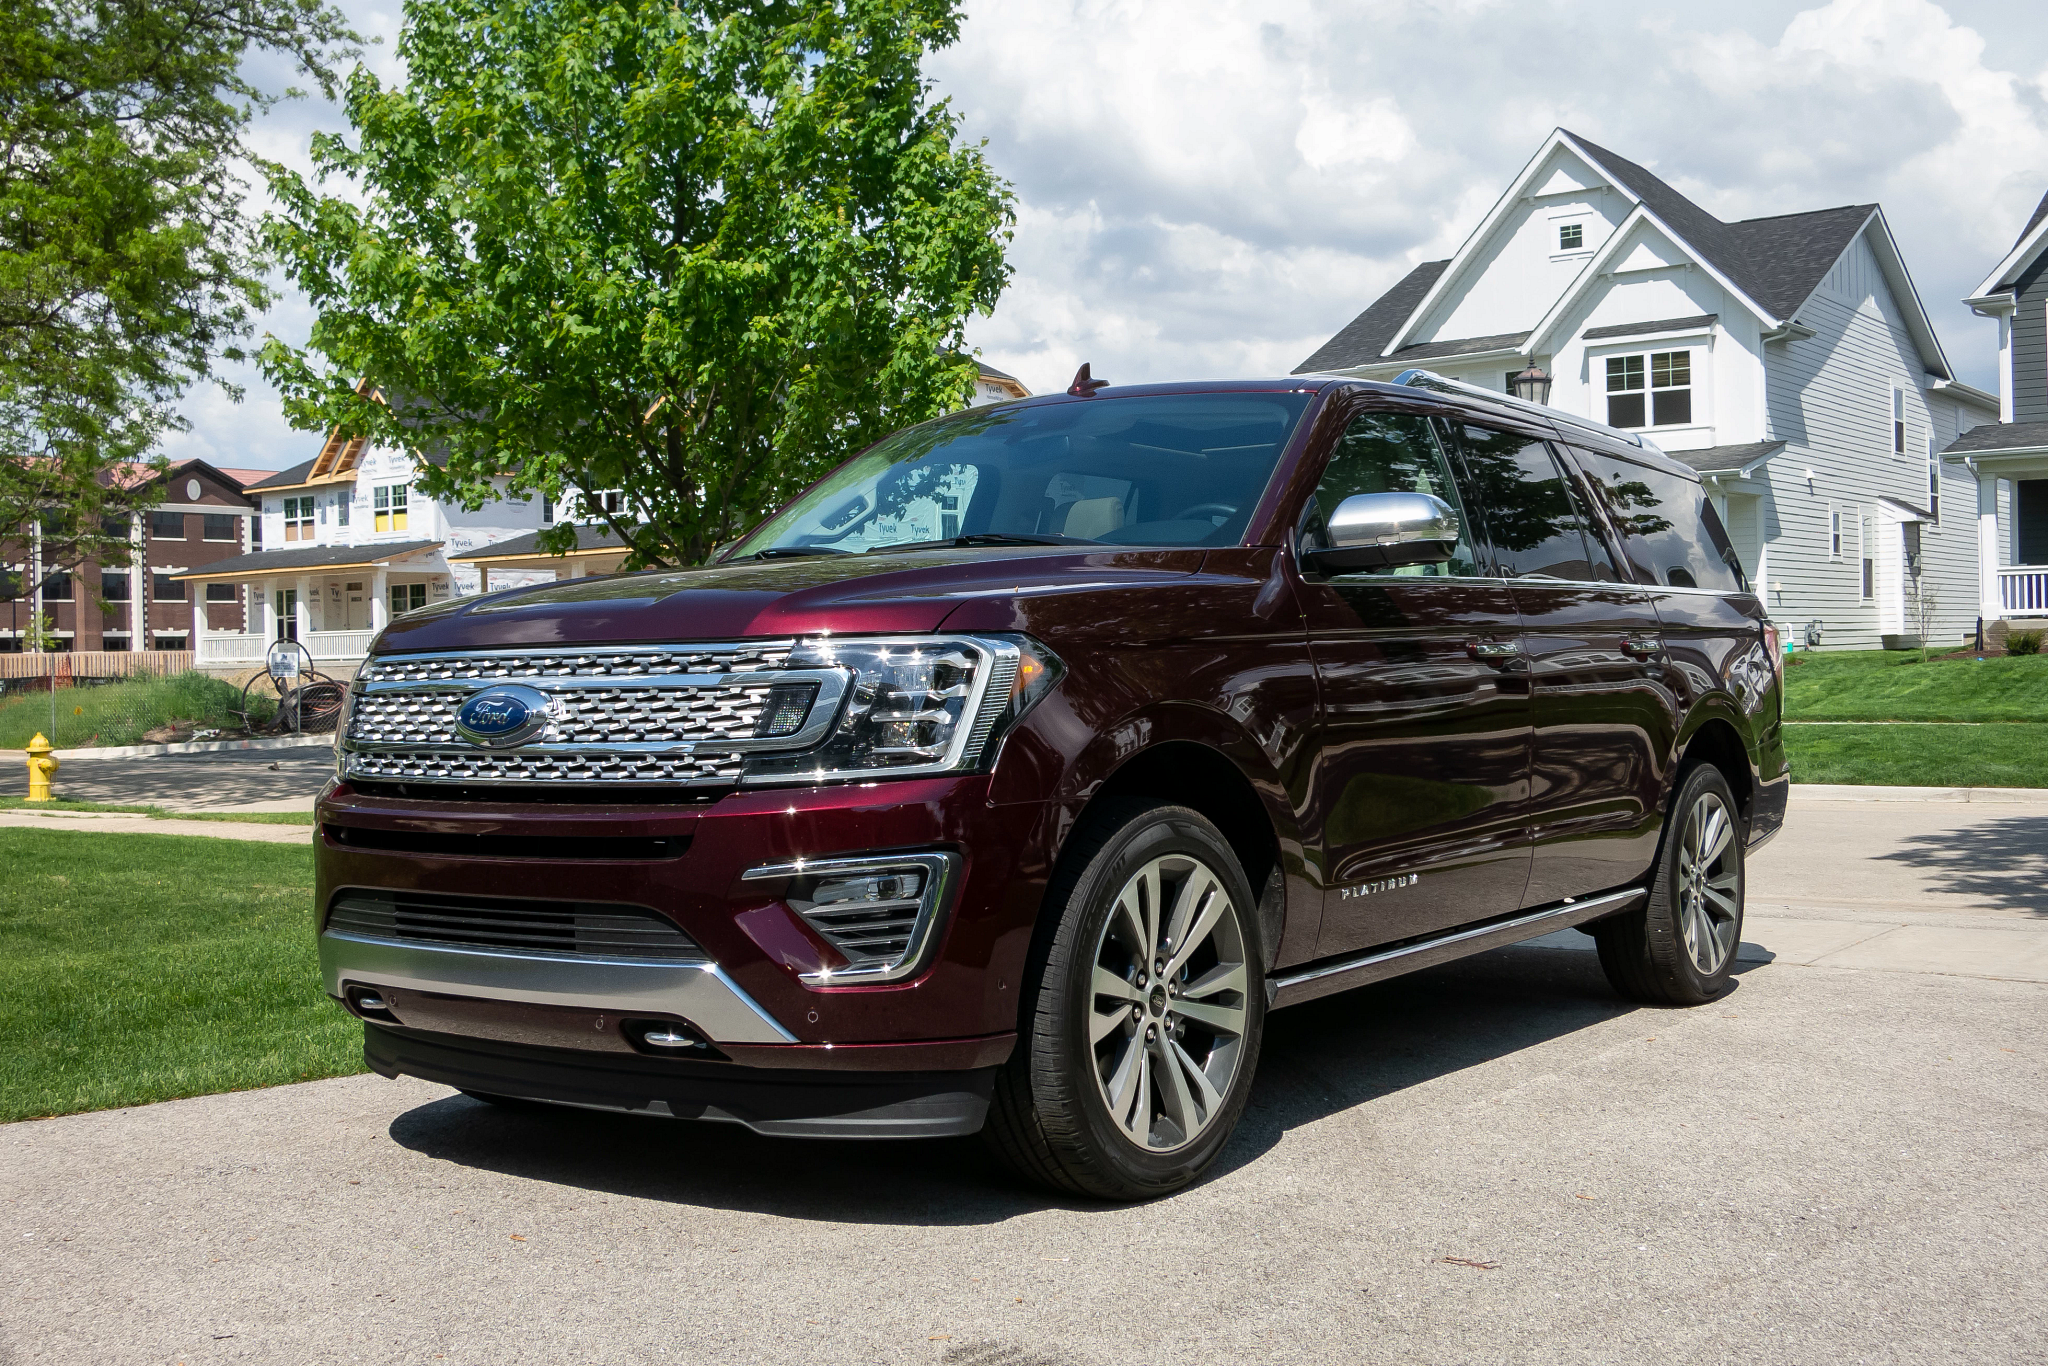 2020 Ford Expedition Platinum: What You Get When You Go Big